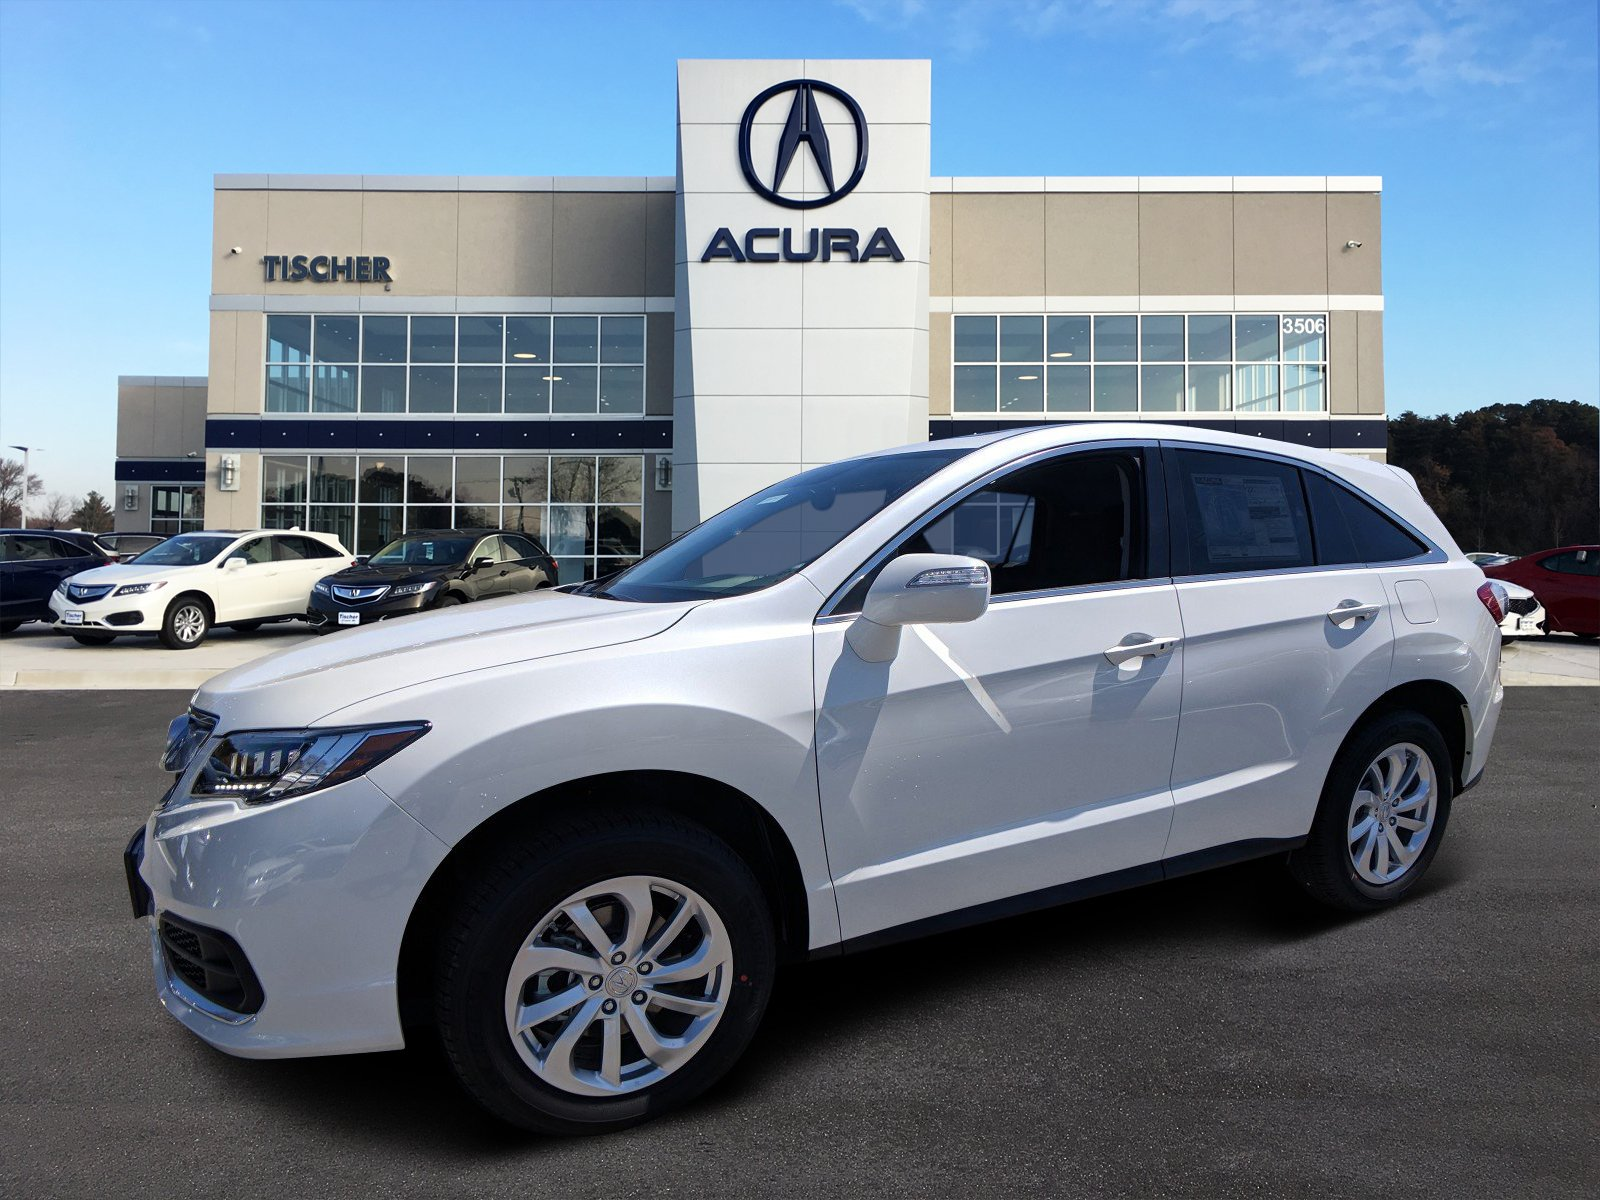 specs rdx show motor first news pictures prototype revealed magazine by at car acura detroit official